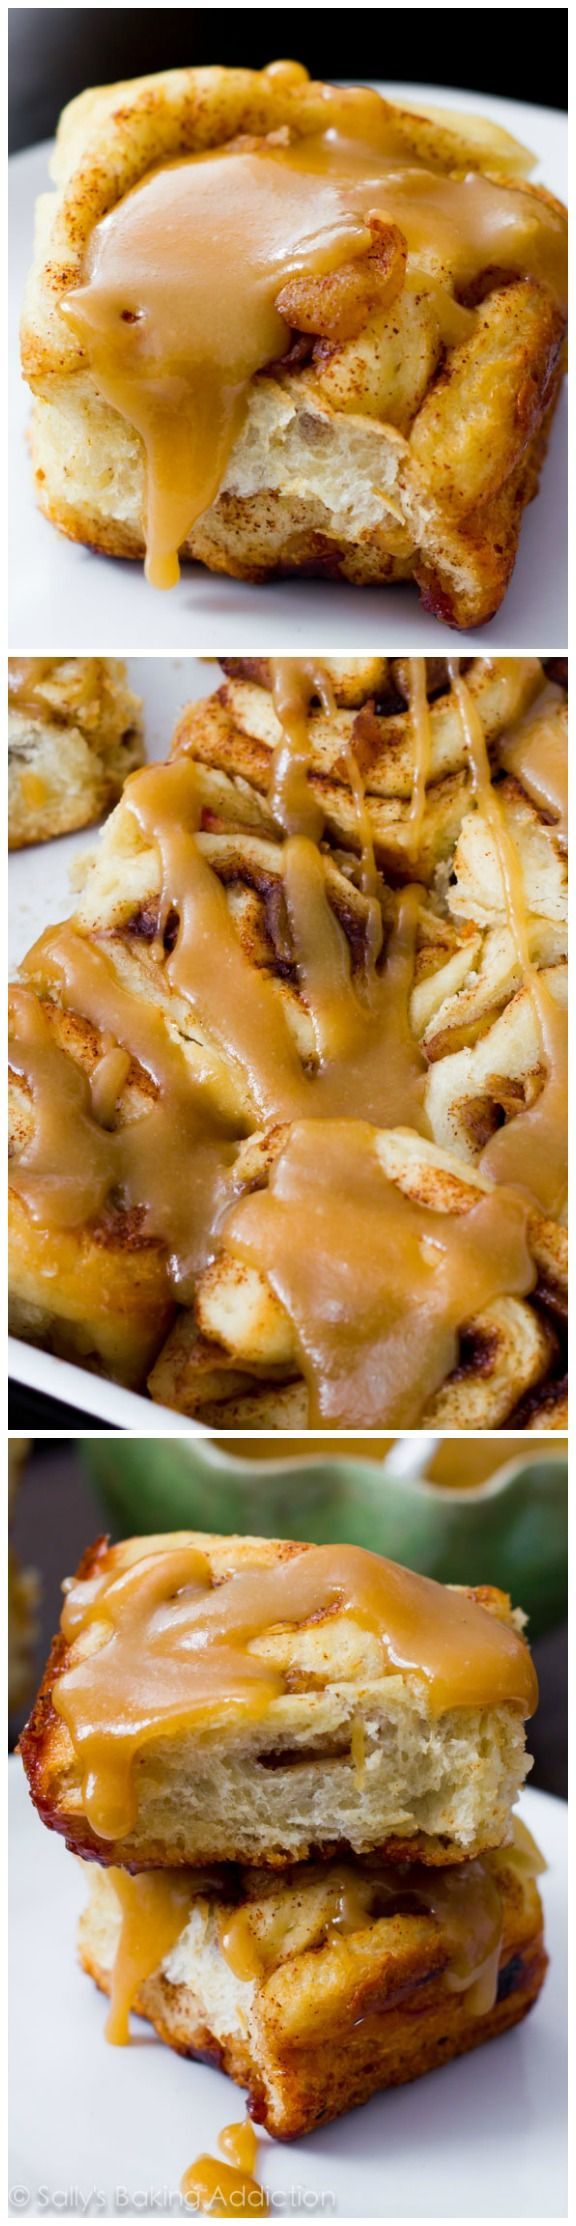 Soft, fluffy cinnamon rolls stuffed with brown sugar & apples, and generously glazed with homemade caramel!